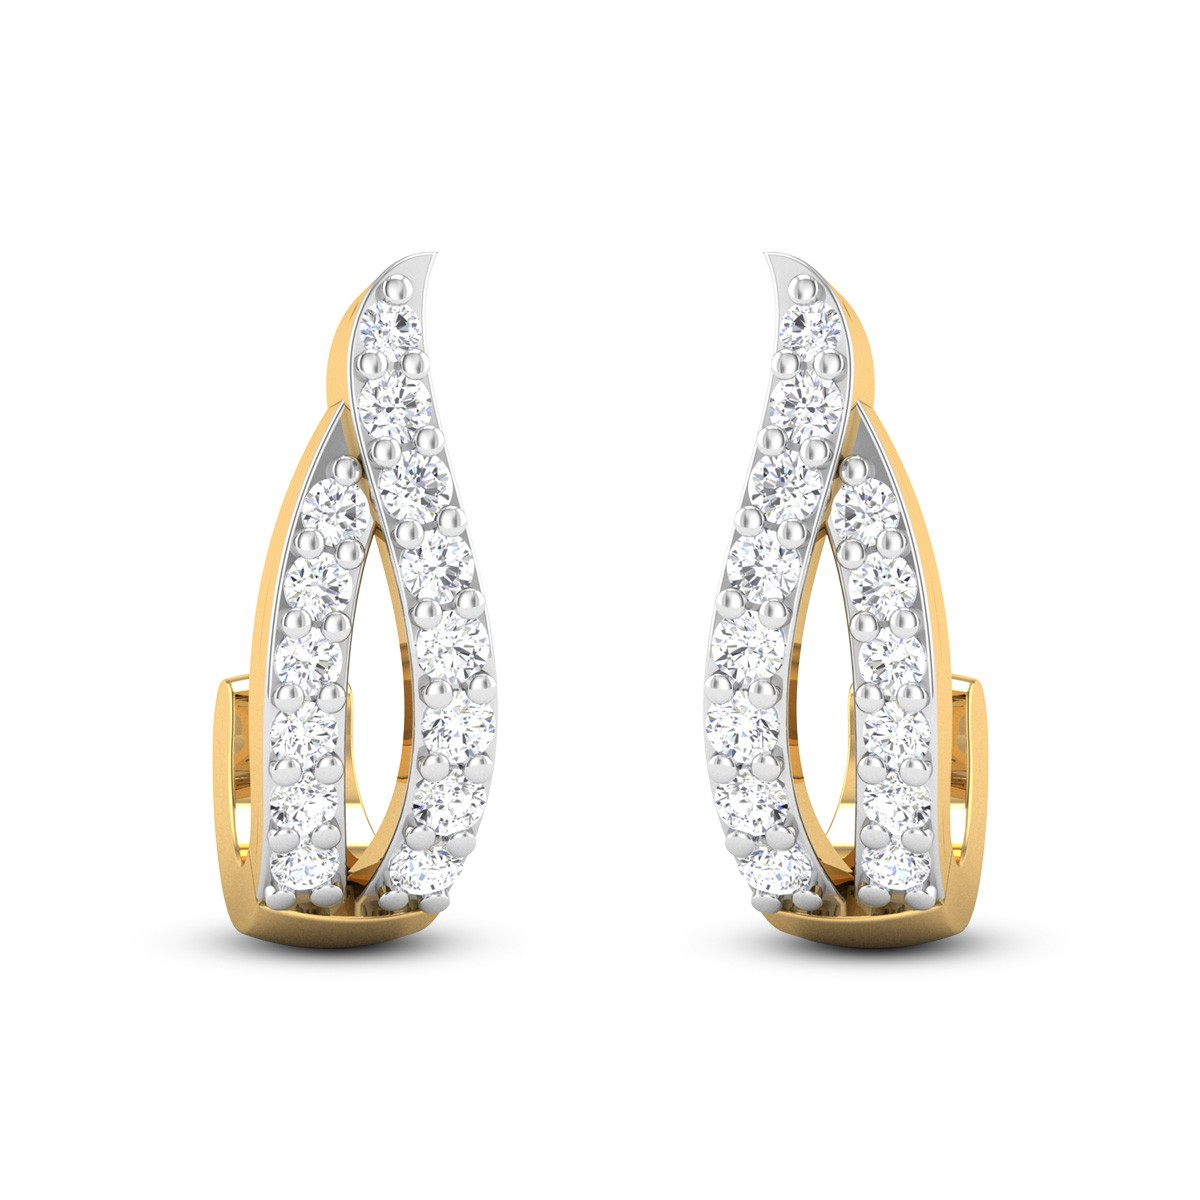 Dancing Flames Diamond Earrings